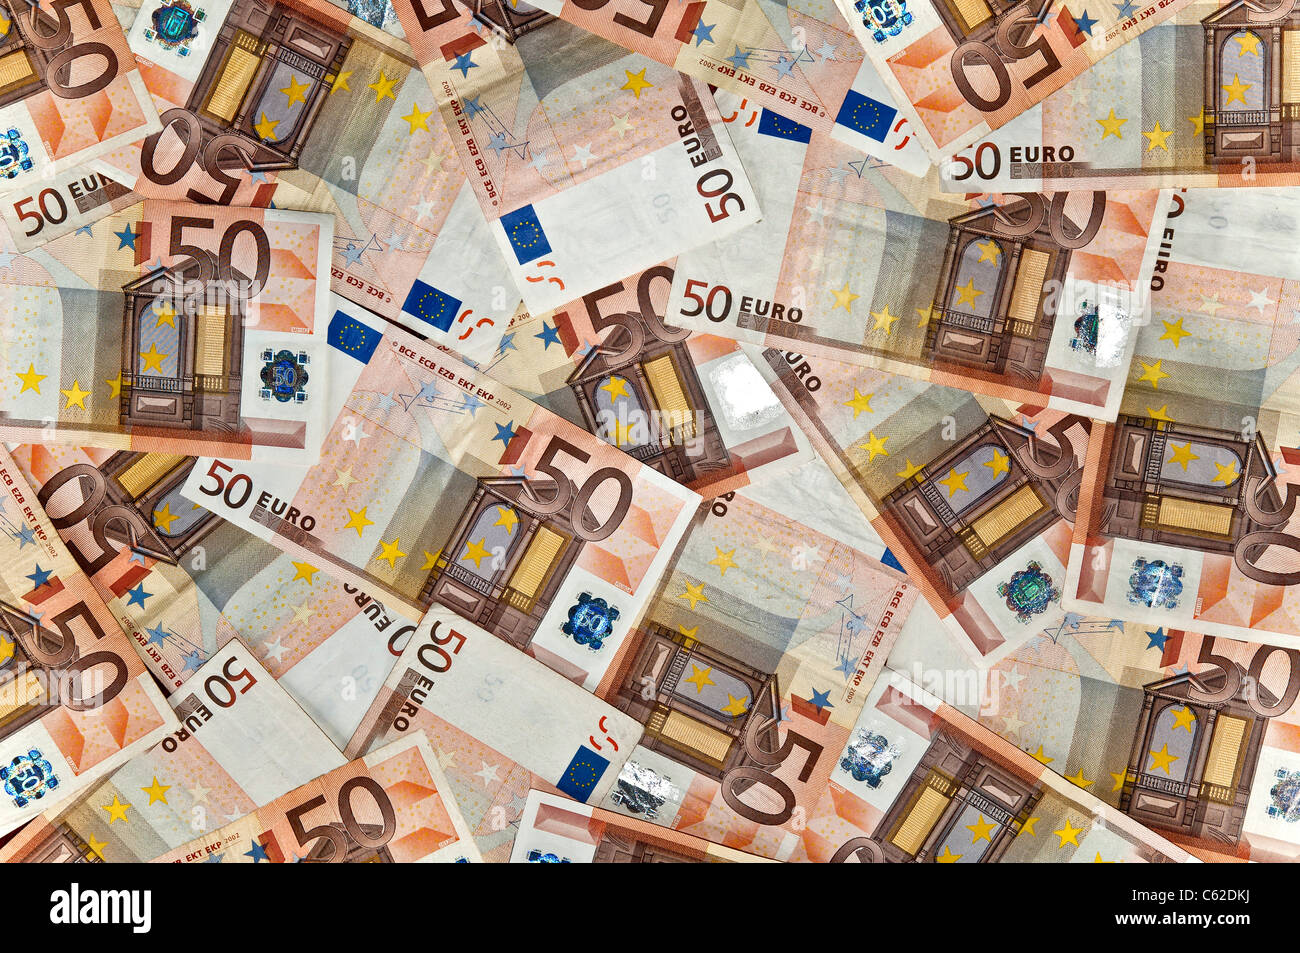 fifty euro notes - Stock Image